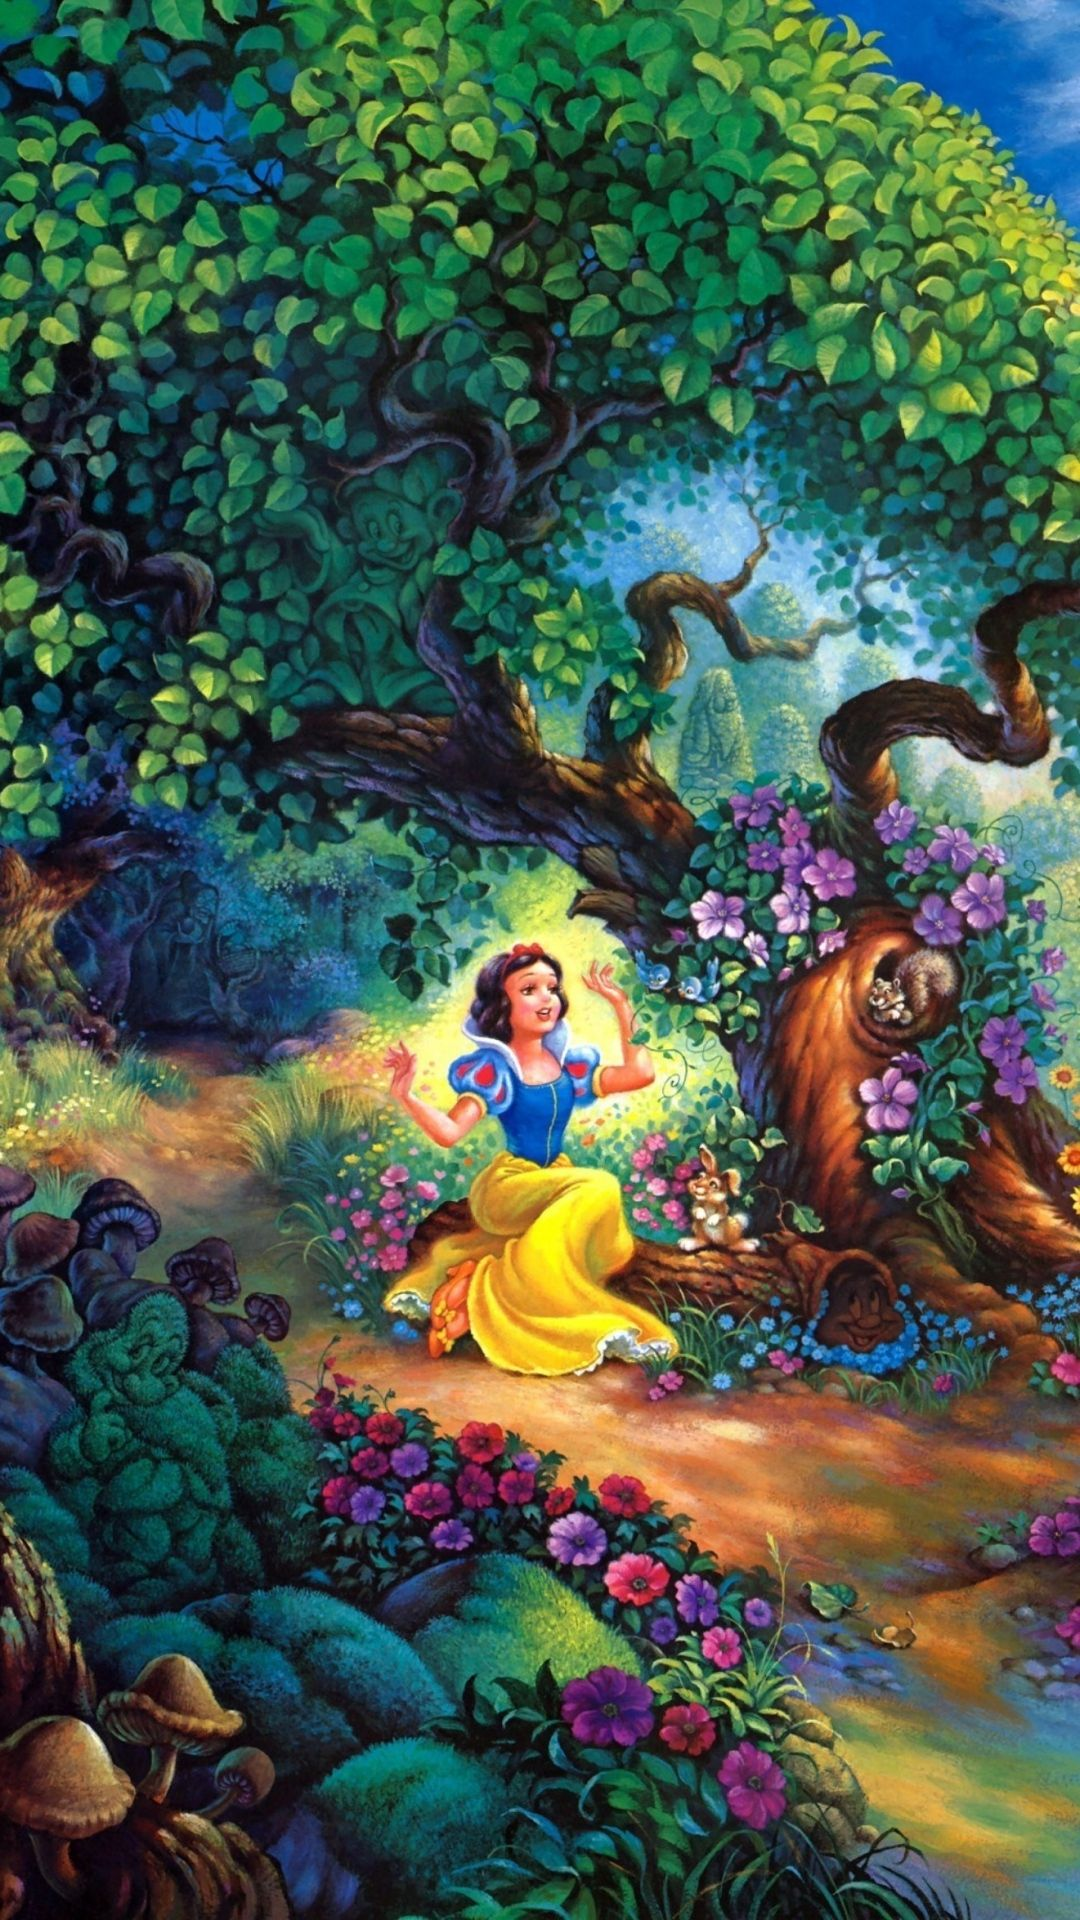 Tap And Get The Free App Art Cartoons Solorful Disney Snow White Forest Tree Flowers Snow White Wallpaper Disney Wallpaper Wallpaper Iphone Disney Princess